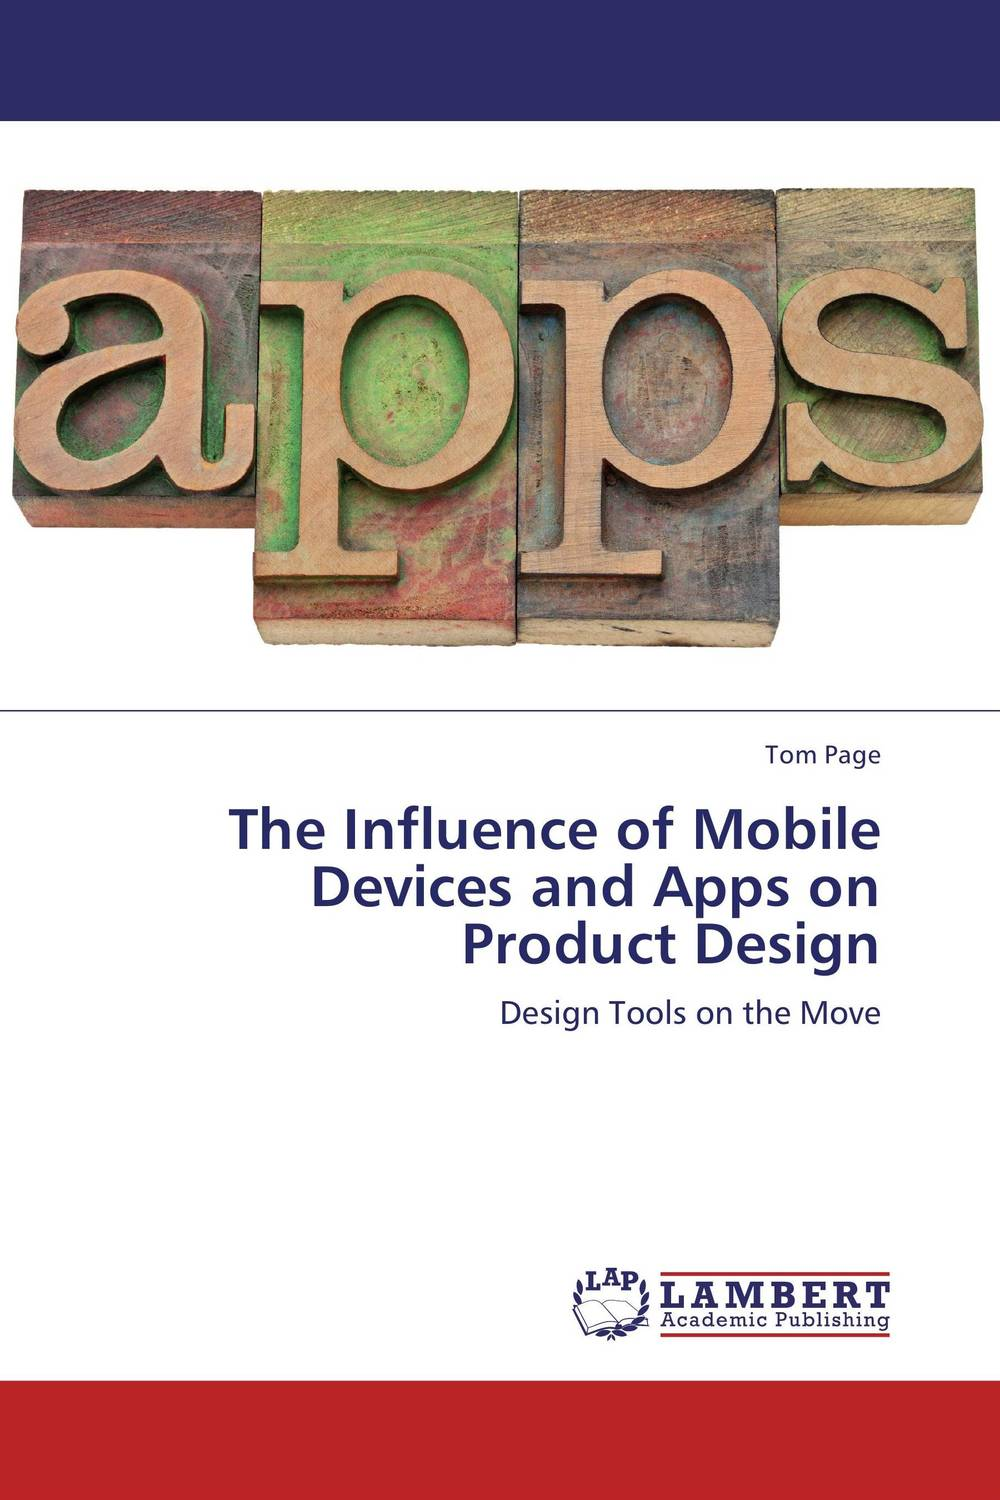 The Influence of Mobile Devices and Apps on Product Design